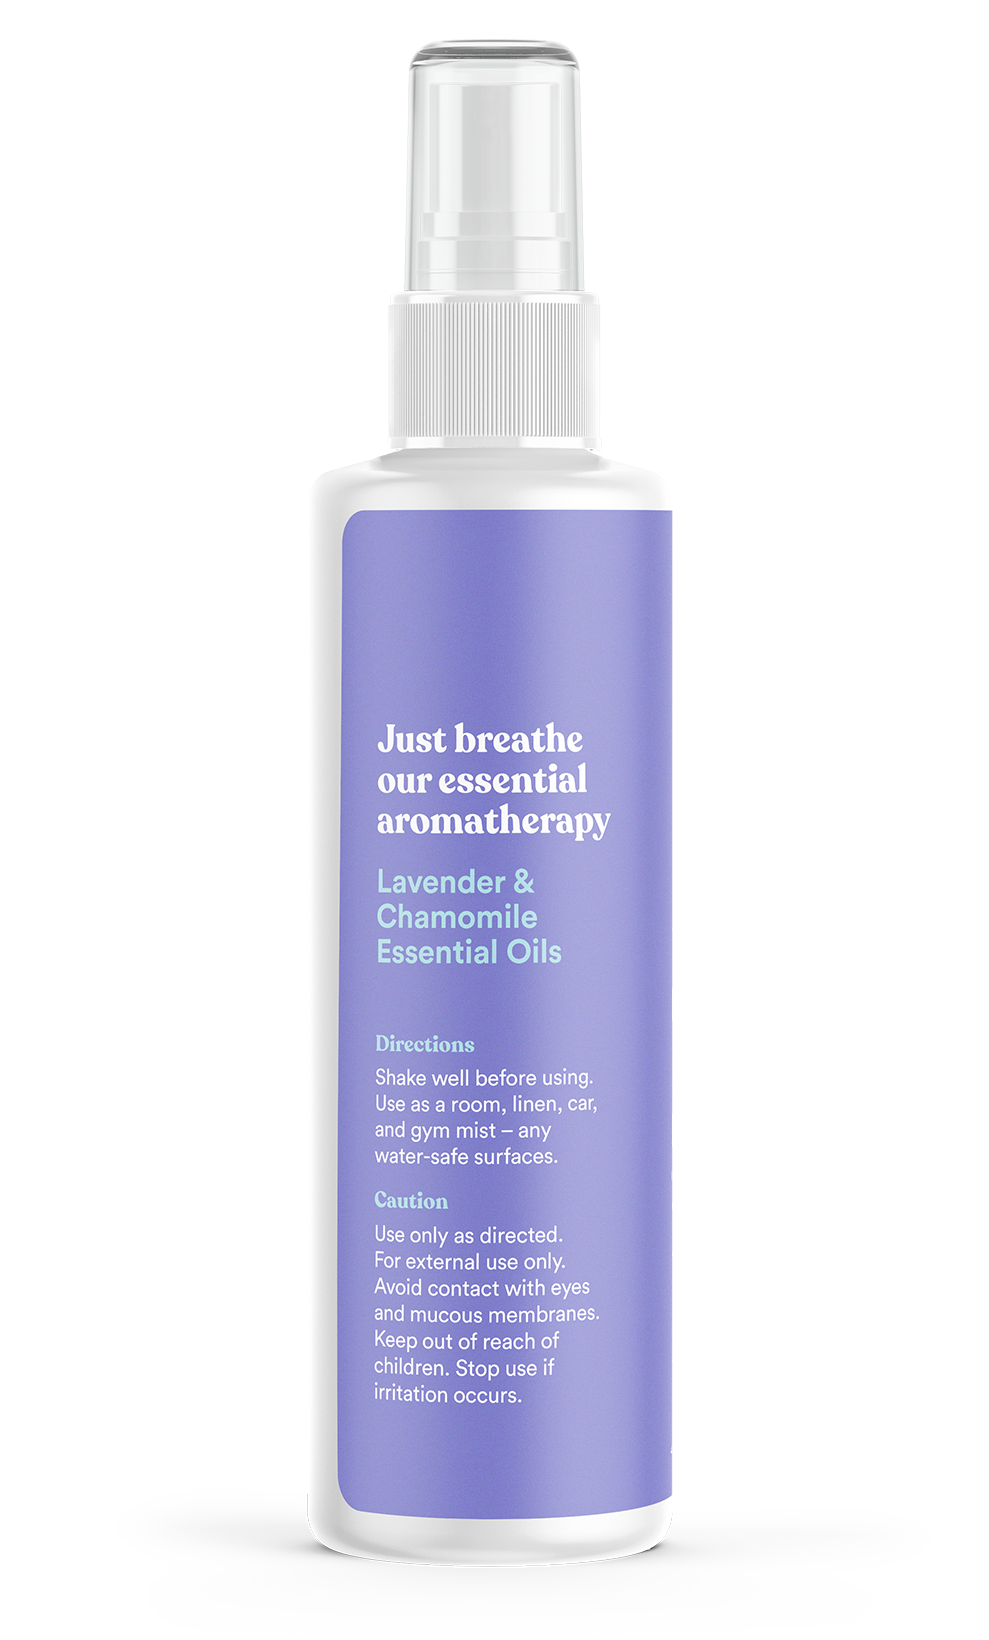 Pure Soothing Comfort Aromatherapy Mist